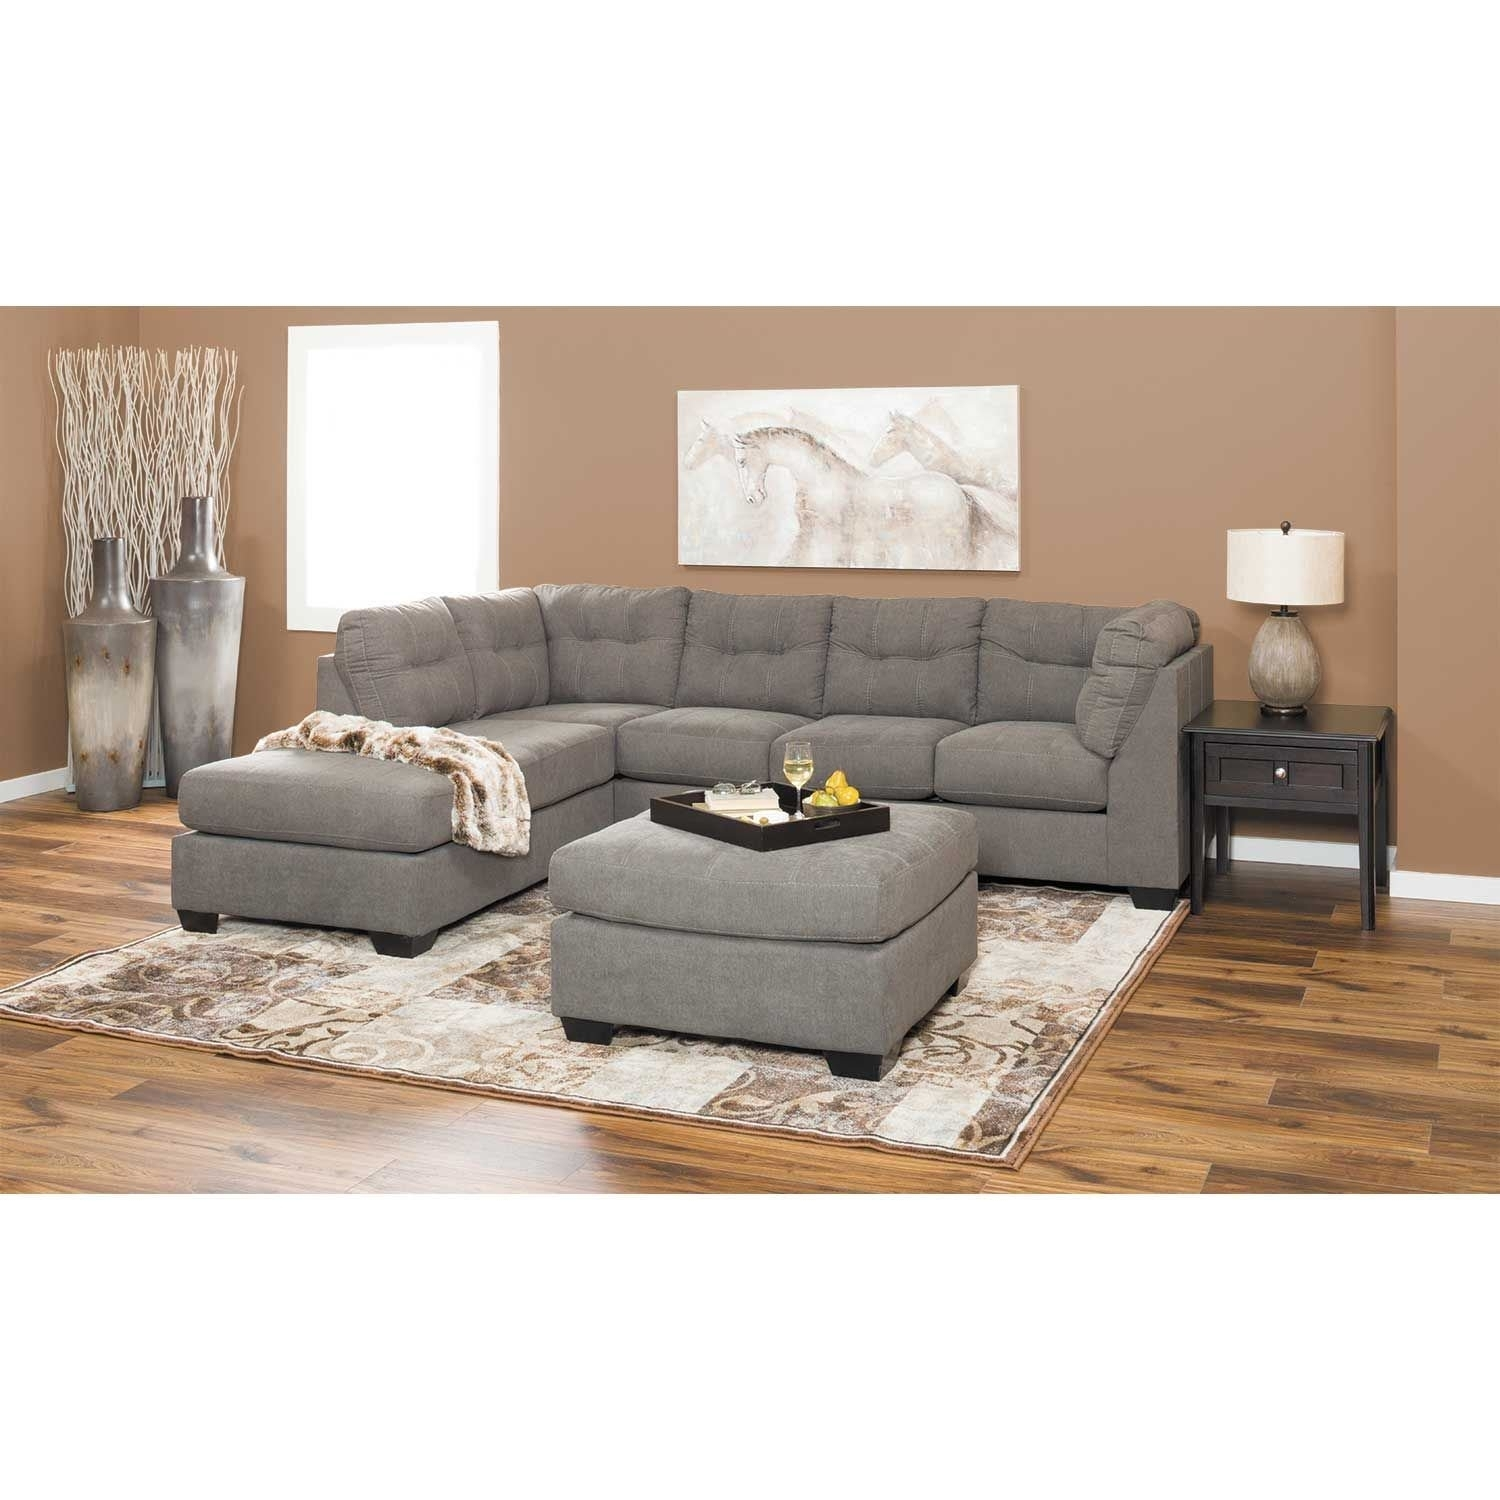 Maier Charcoal 2 Piece Sectional With Laf Chaise | 4520016/67 Inside Arrowmask 2 Piece Sectionals With Laf Chaise (View 7 of 25)